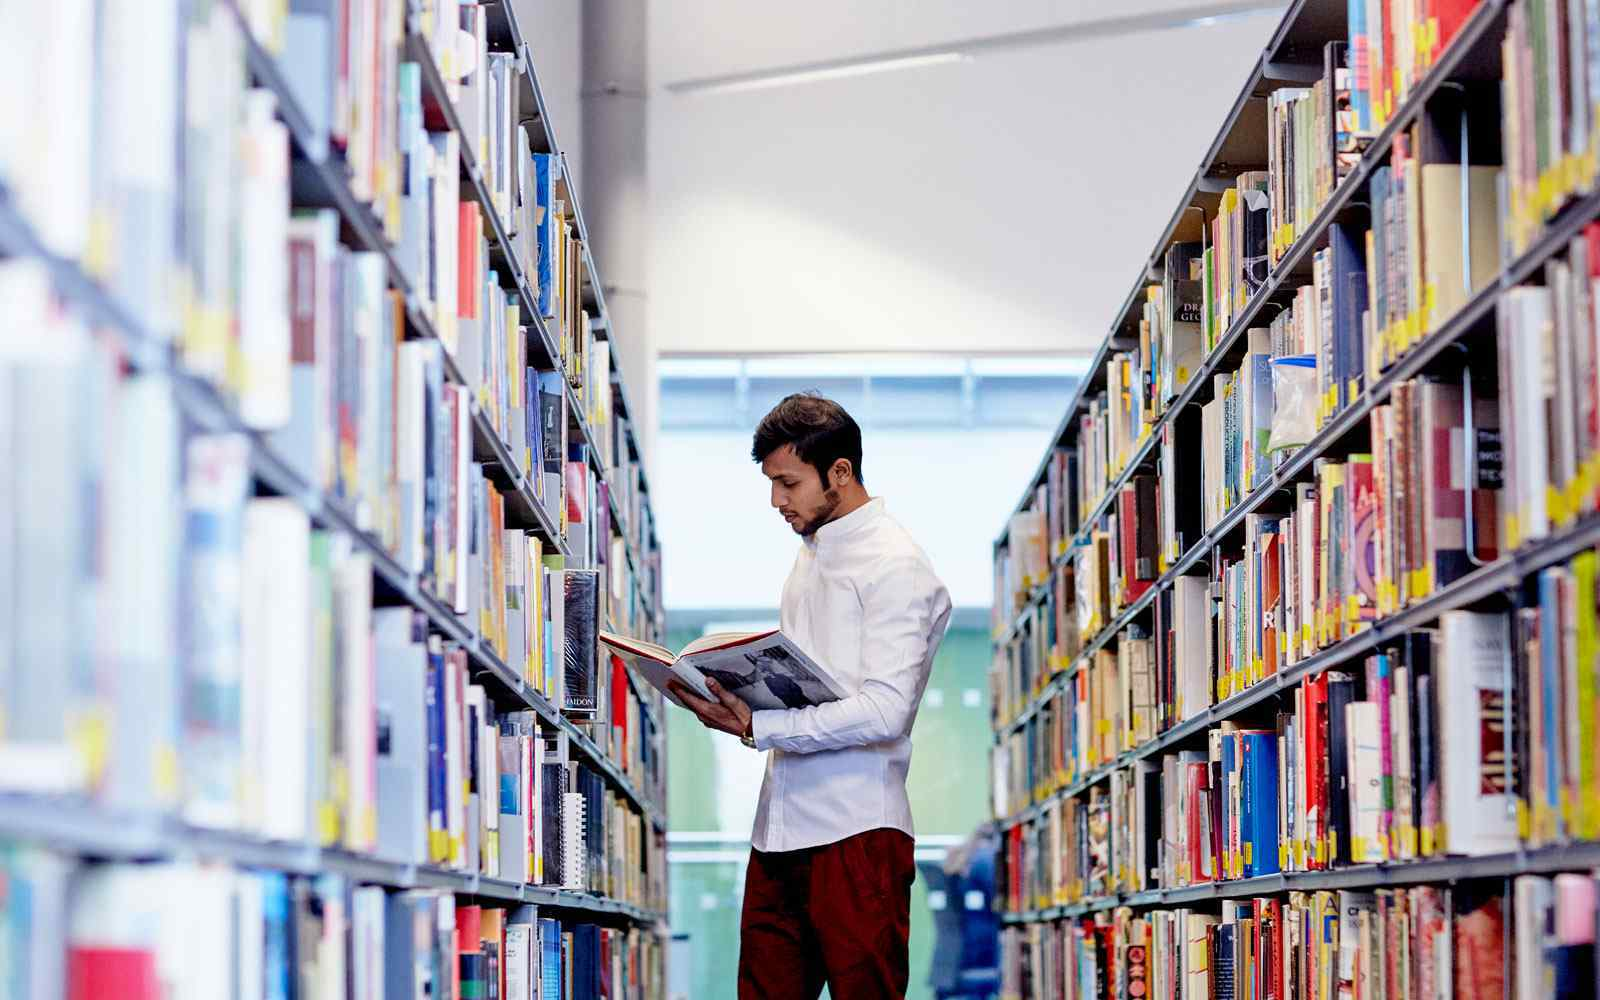 Student in library opens book